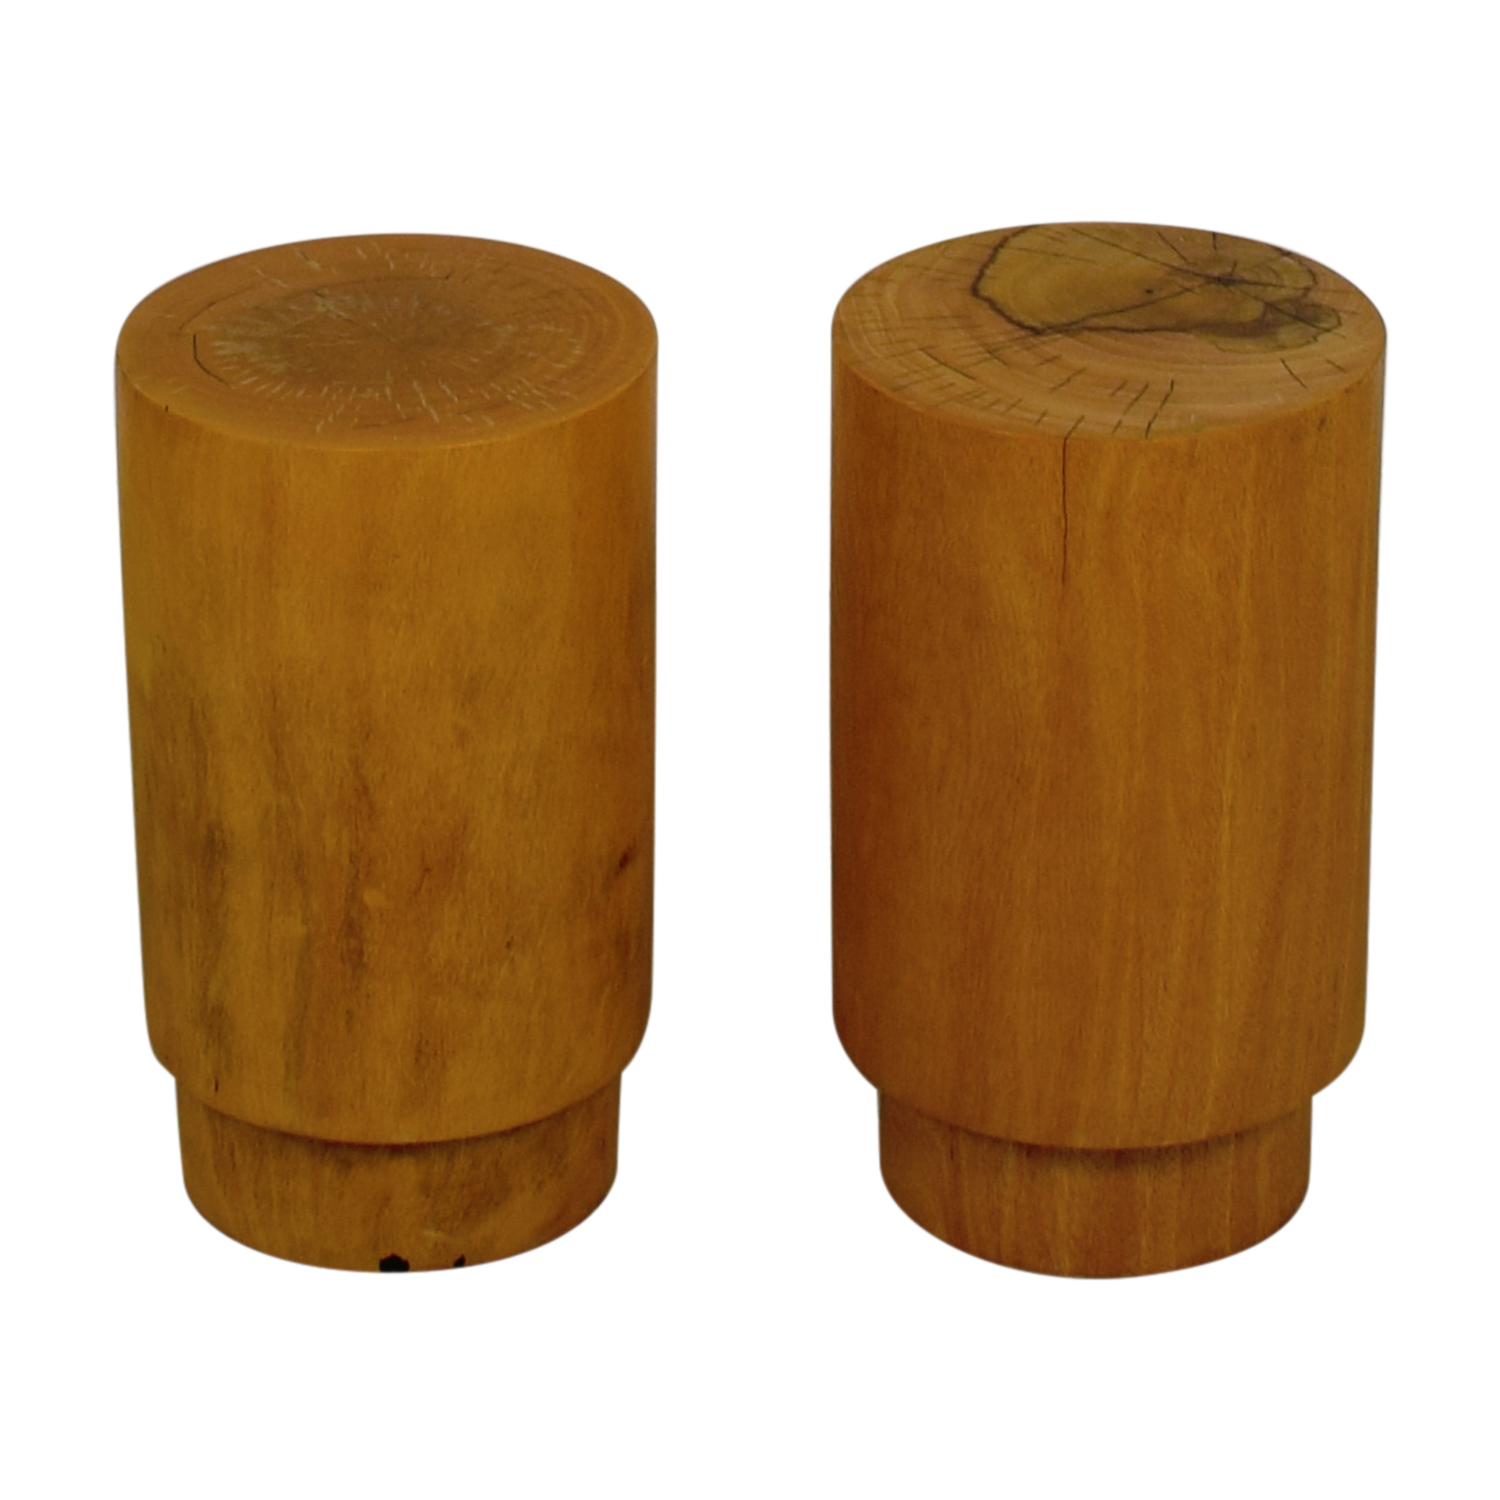 Round Wood Side Tables or Stools Stools